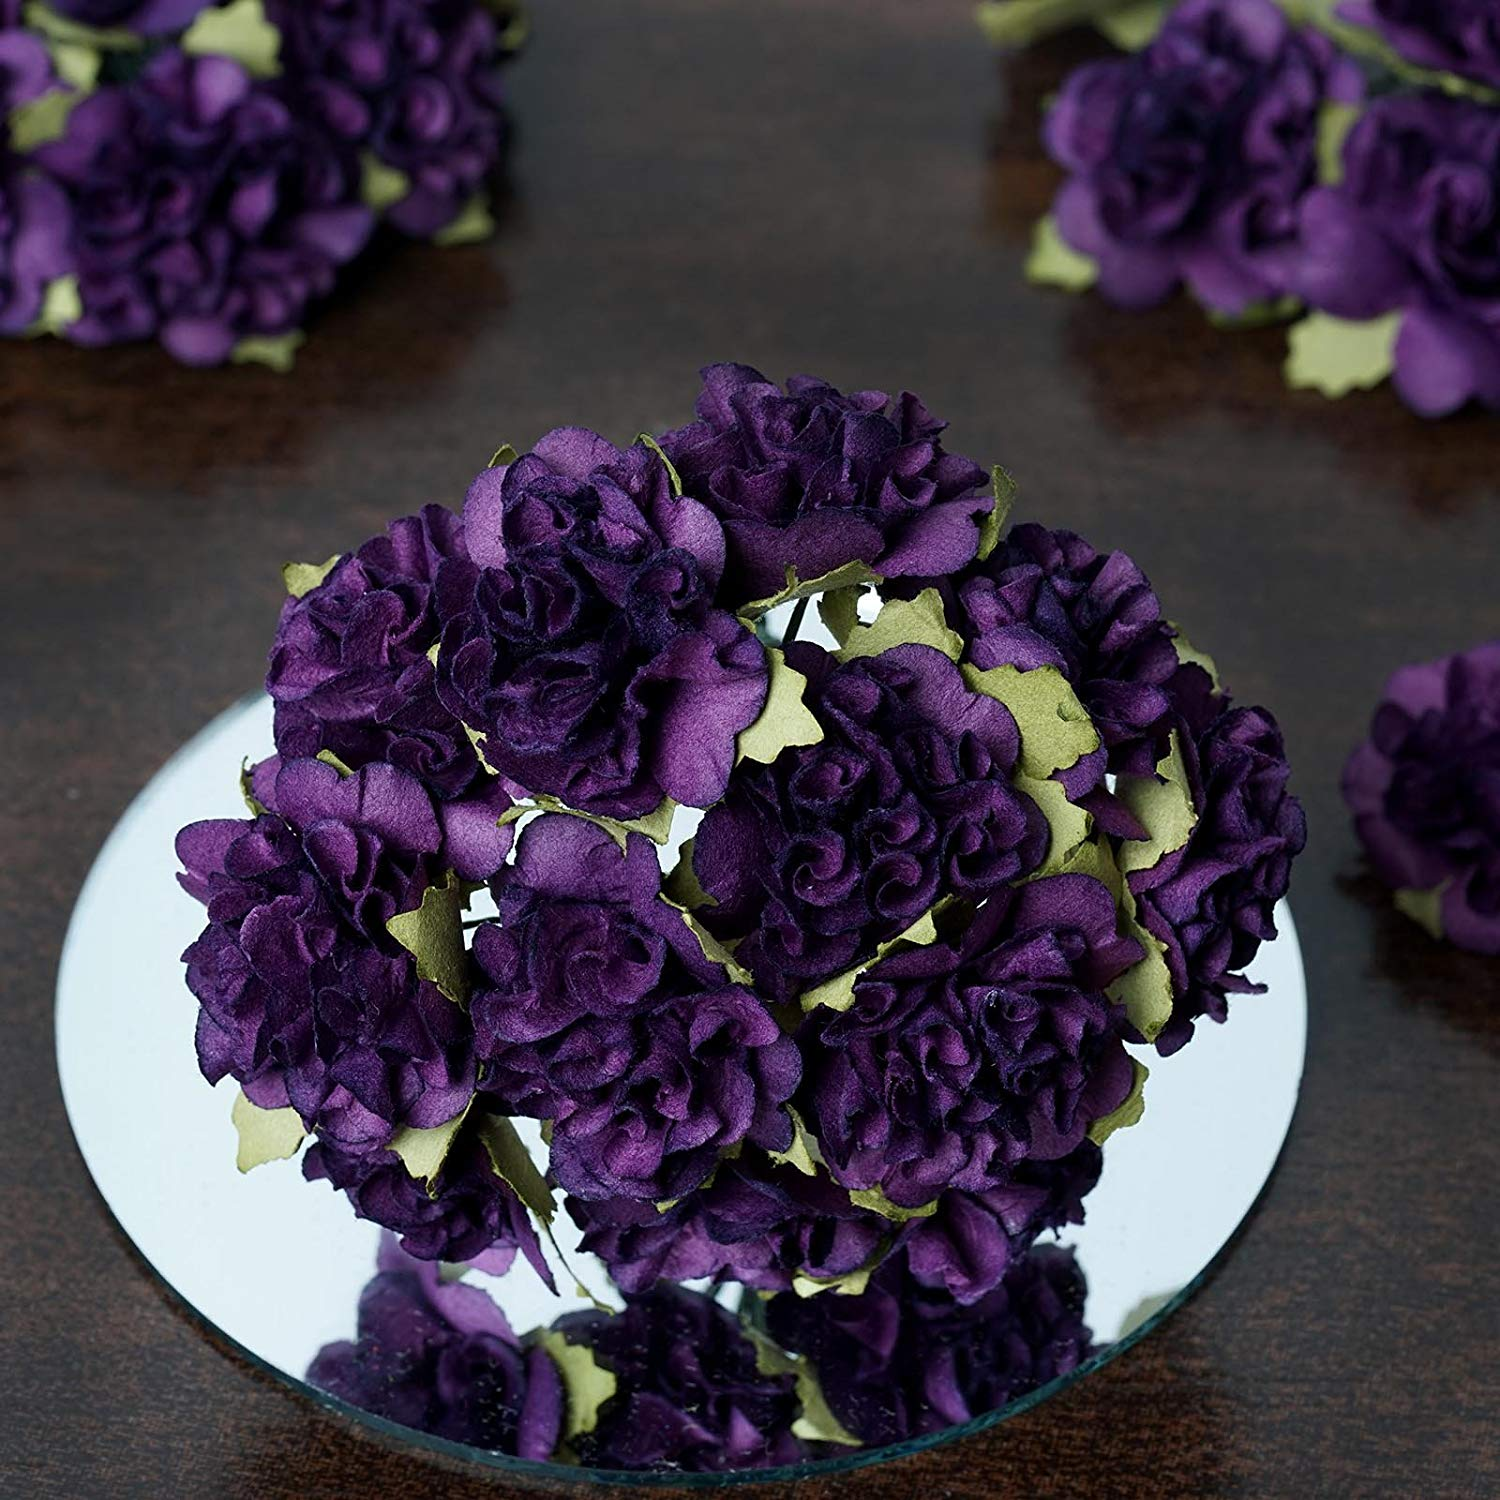 Cheap purple flowers in decorations find purple flowers in get quotations balsacircle 72 purple craft paper carnations mini flowers for diy wedding birthday party favors decorations izmirmasajfo